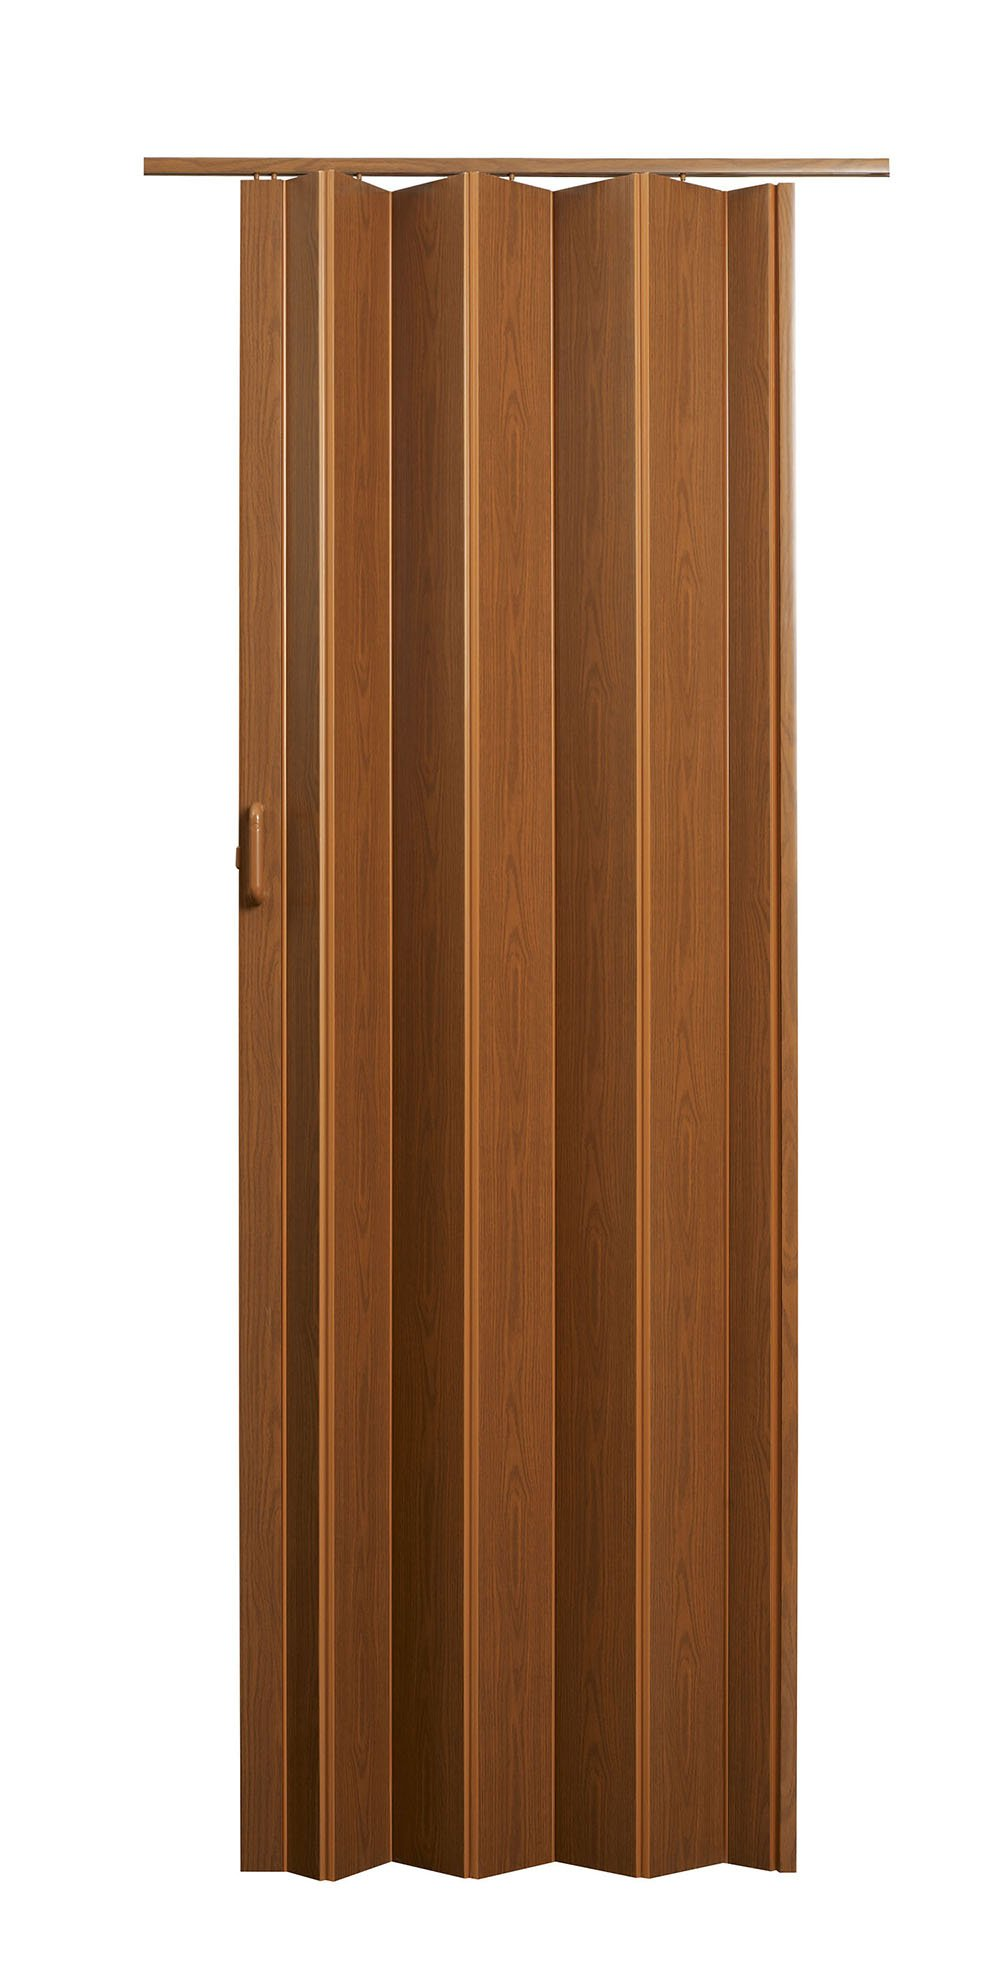 LTL Home Products EN3280FL Encore Interior Accordion Folding Door, 24-36 x 80 Inches, Fruitwood by LTL Home Products